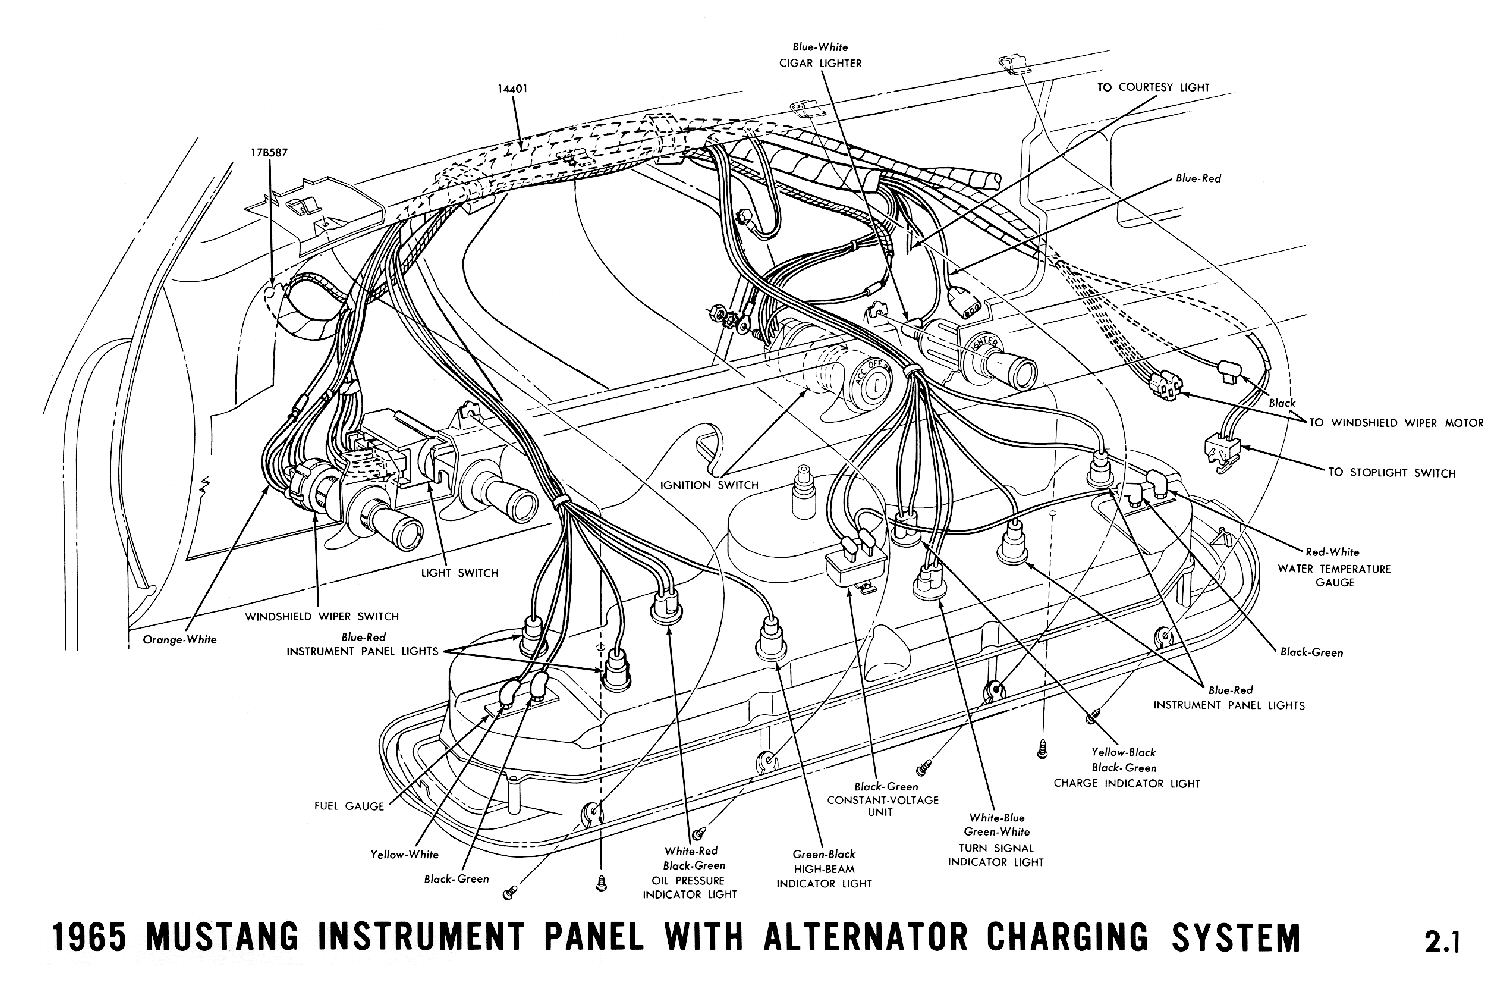 1965 mustang wiring diagrams average joe restoration 1965a 1965 mustang instrument panel alternator charging system pictorial